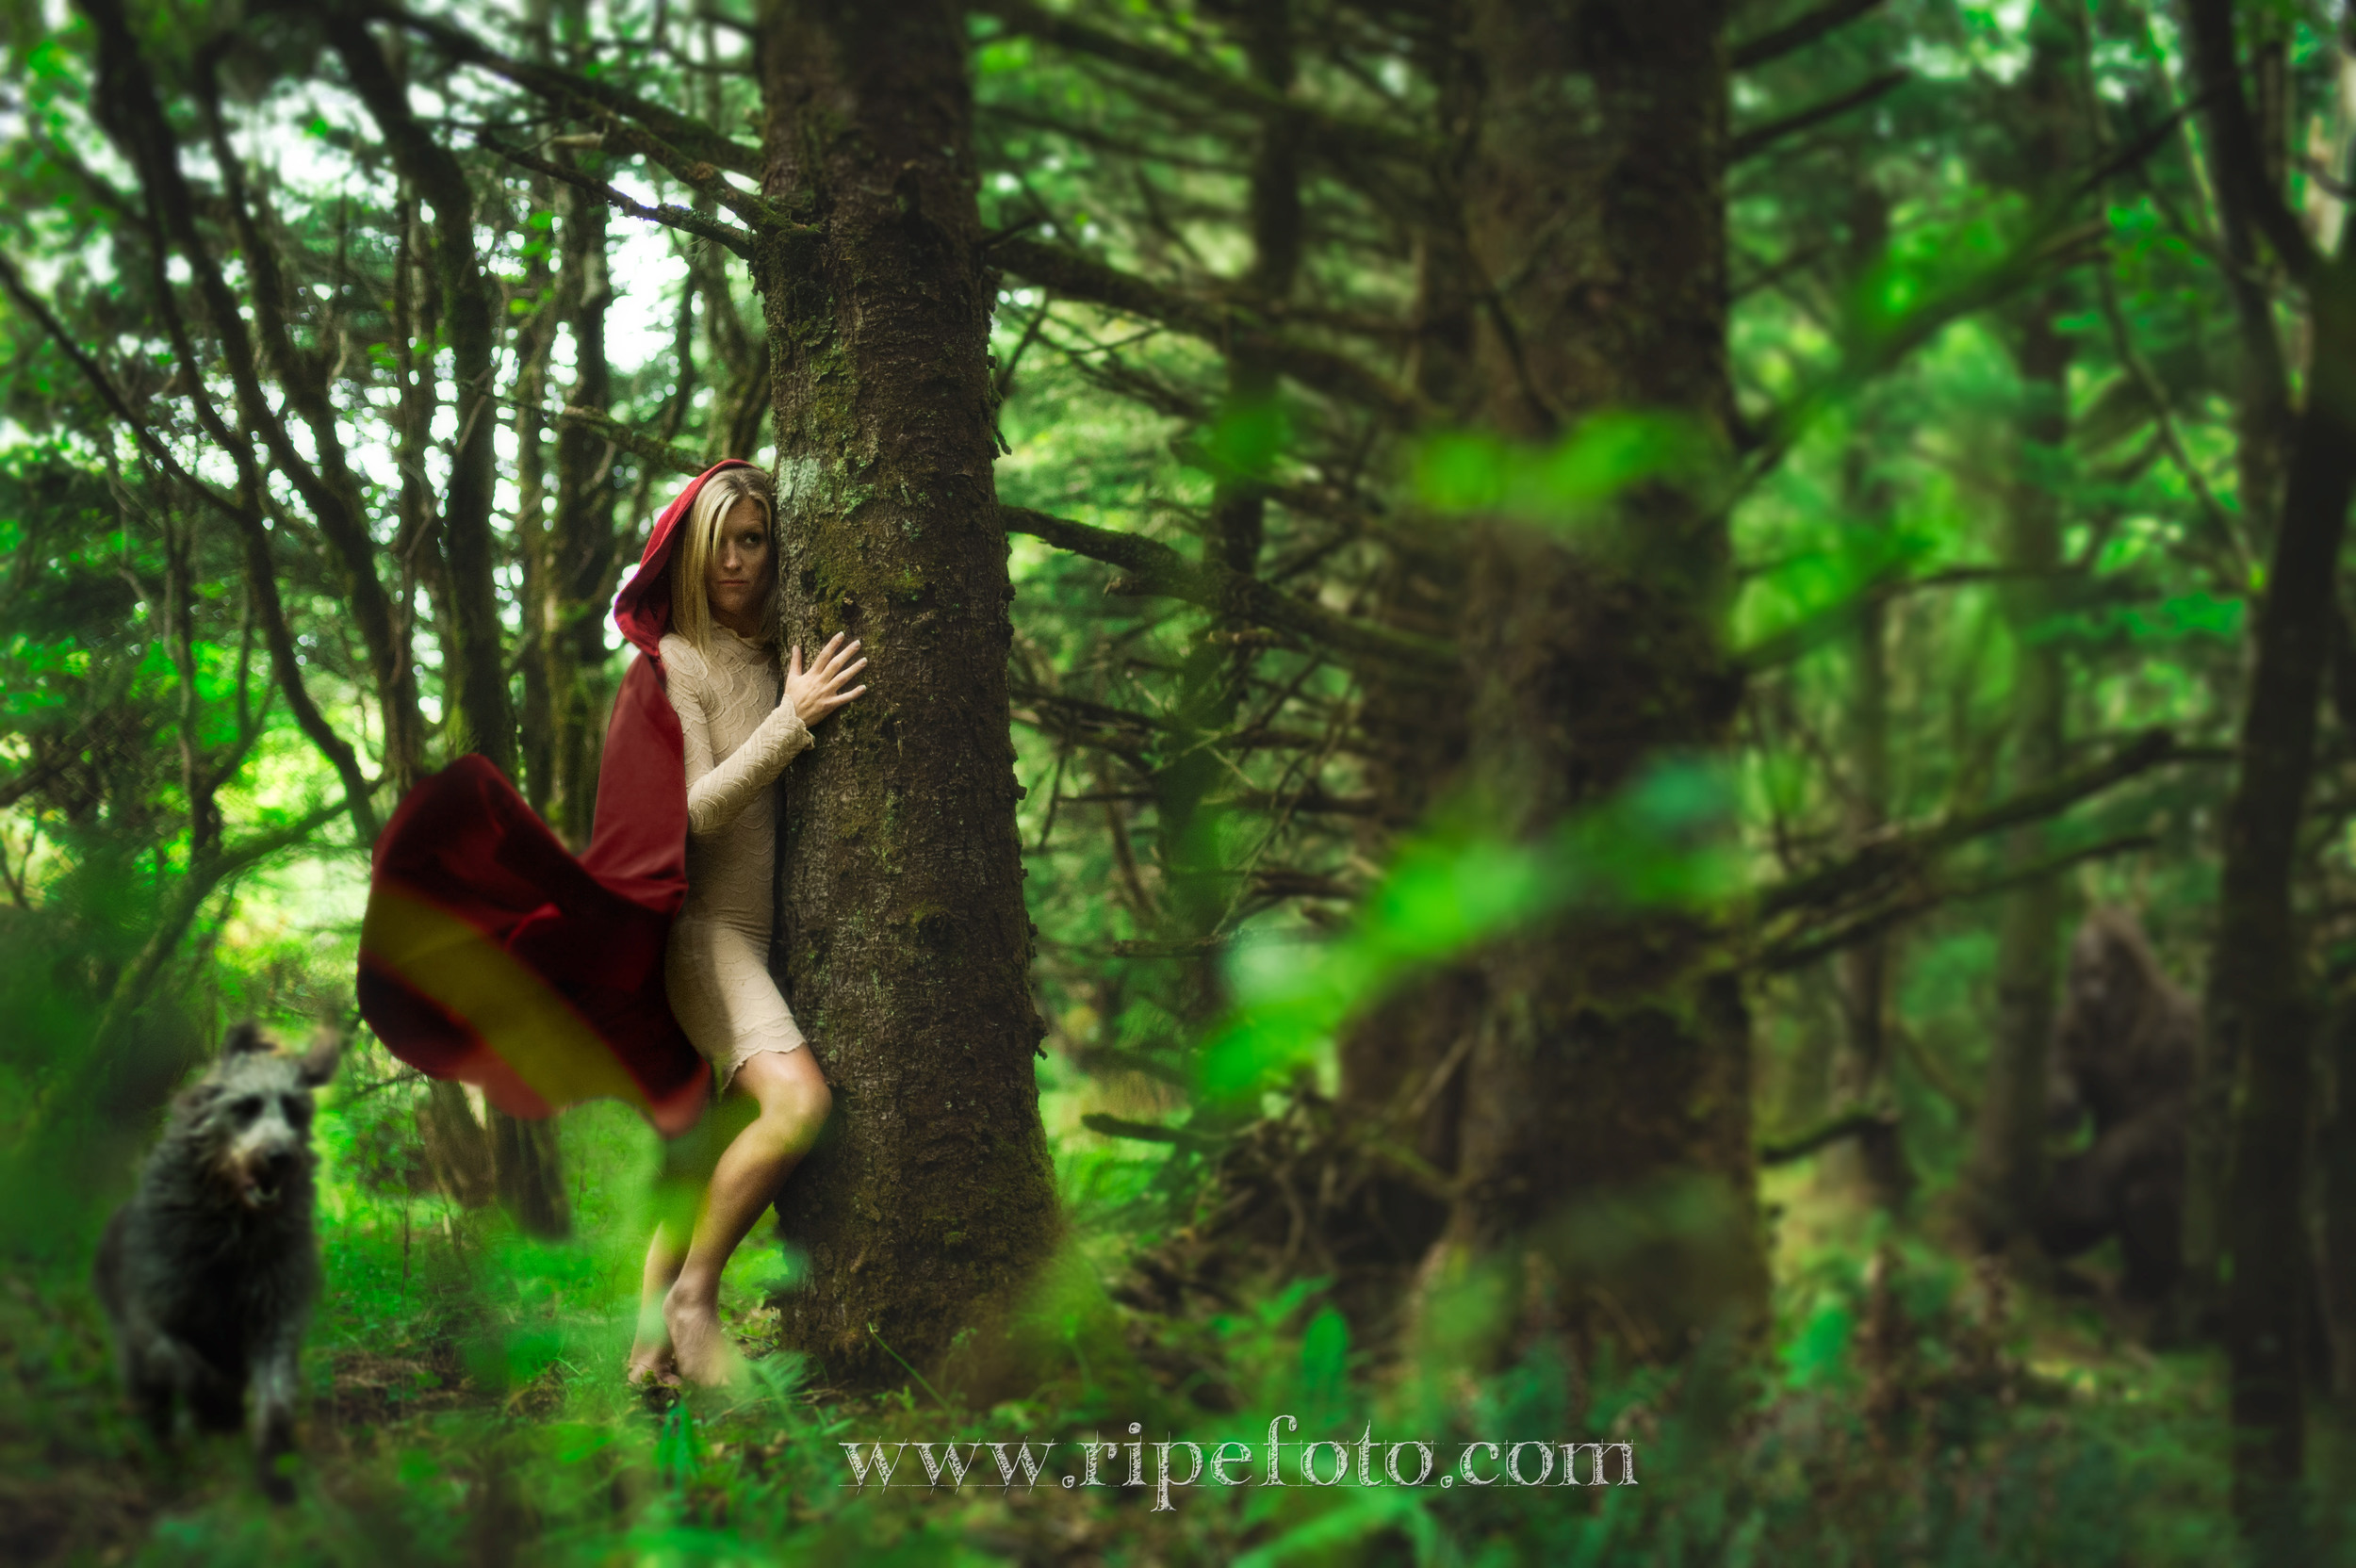 Conceptual portrait of woman and dog in Ecola State Park, Oregon by Portland portrait photographer Ripe Photography.